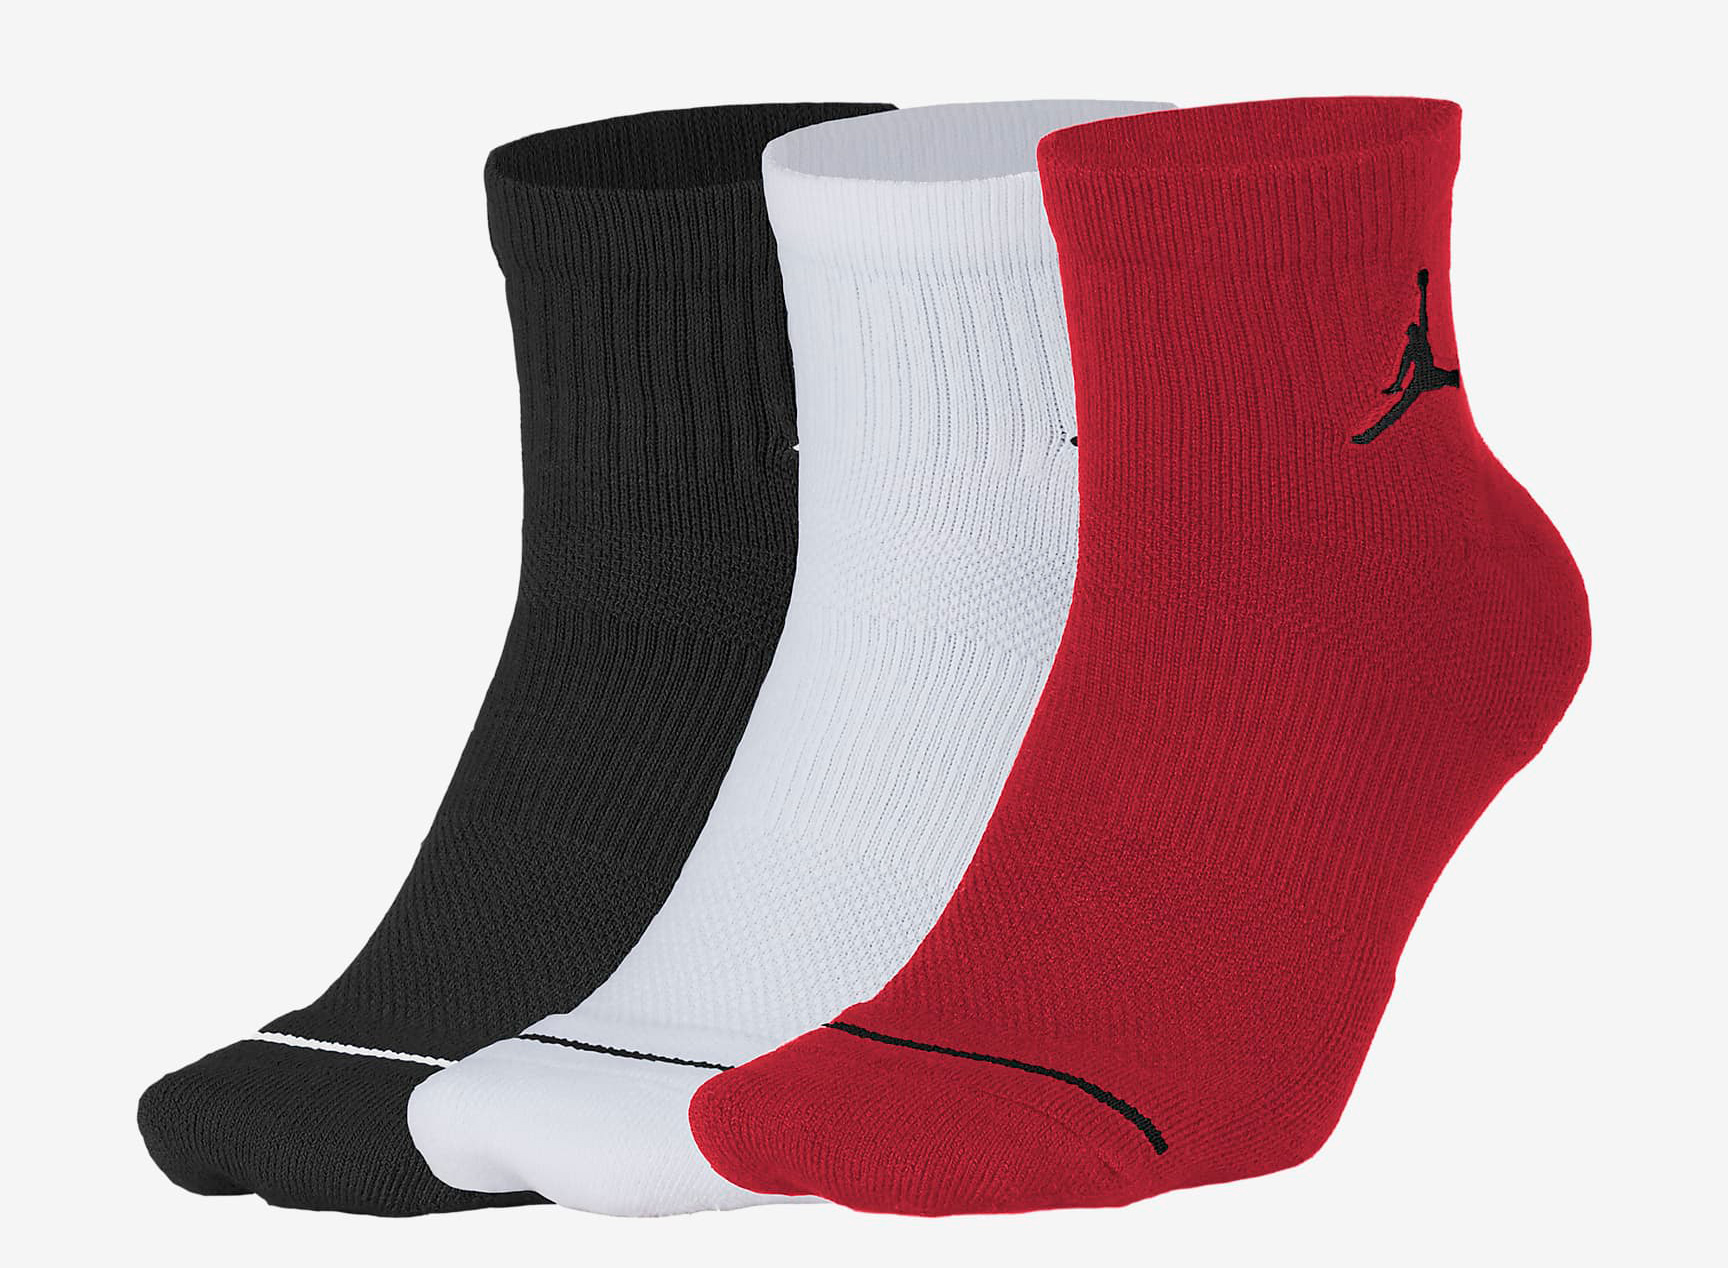 jordan-jumpman-everyday-max-ankle-socks-red-black-white